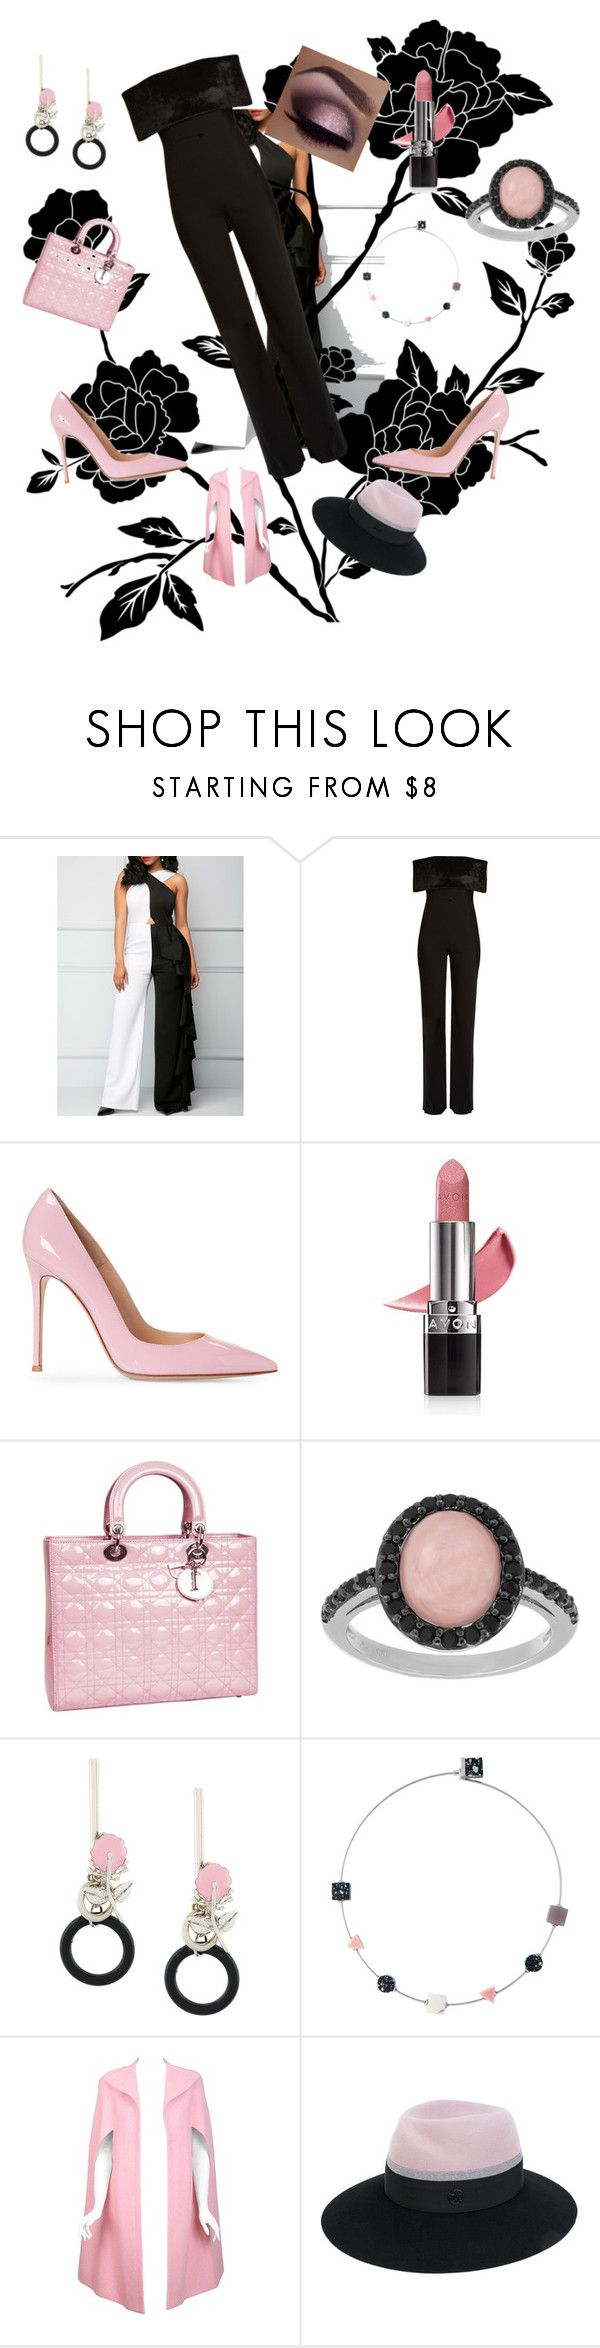 """""""Jumpsuit Jazz #4"""" by sinmrn ❤ liked on Polyvore featuring Galvan, Avon, Christian Dior, Sterling Essentials, Marni, Pauline Trigère and Maison Michel"""